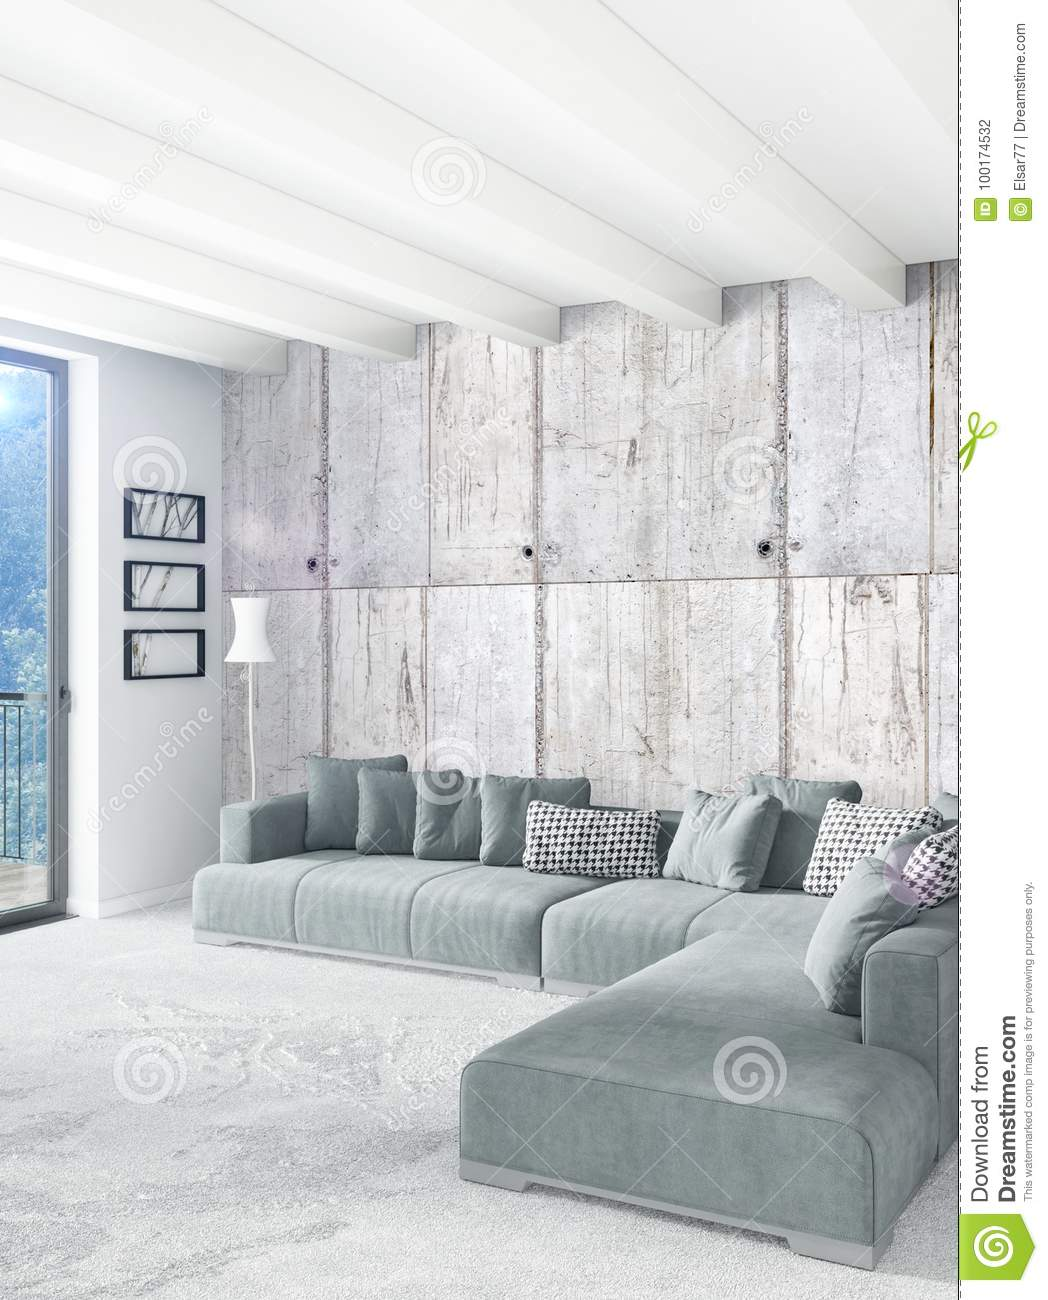 white bedroom minimal style interior design with wood wall and grey